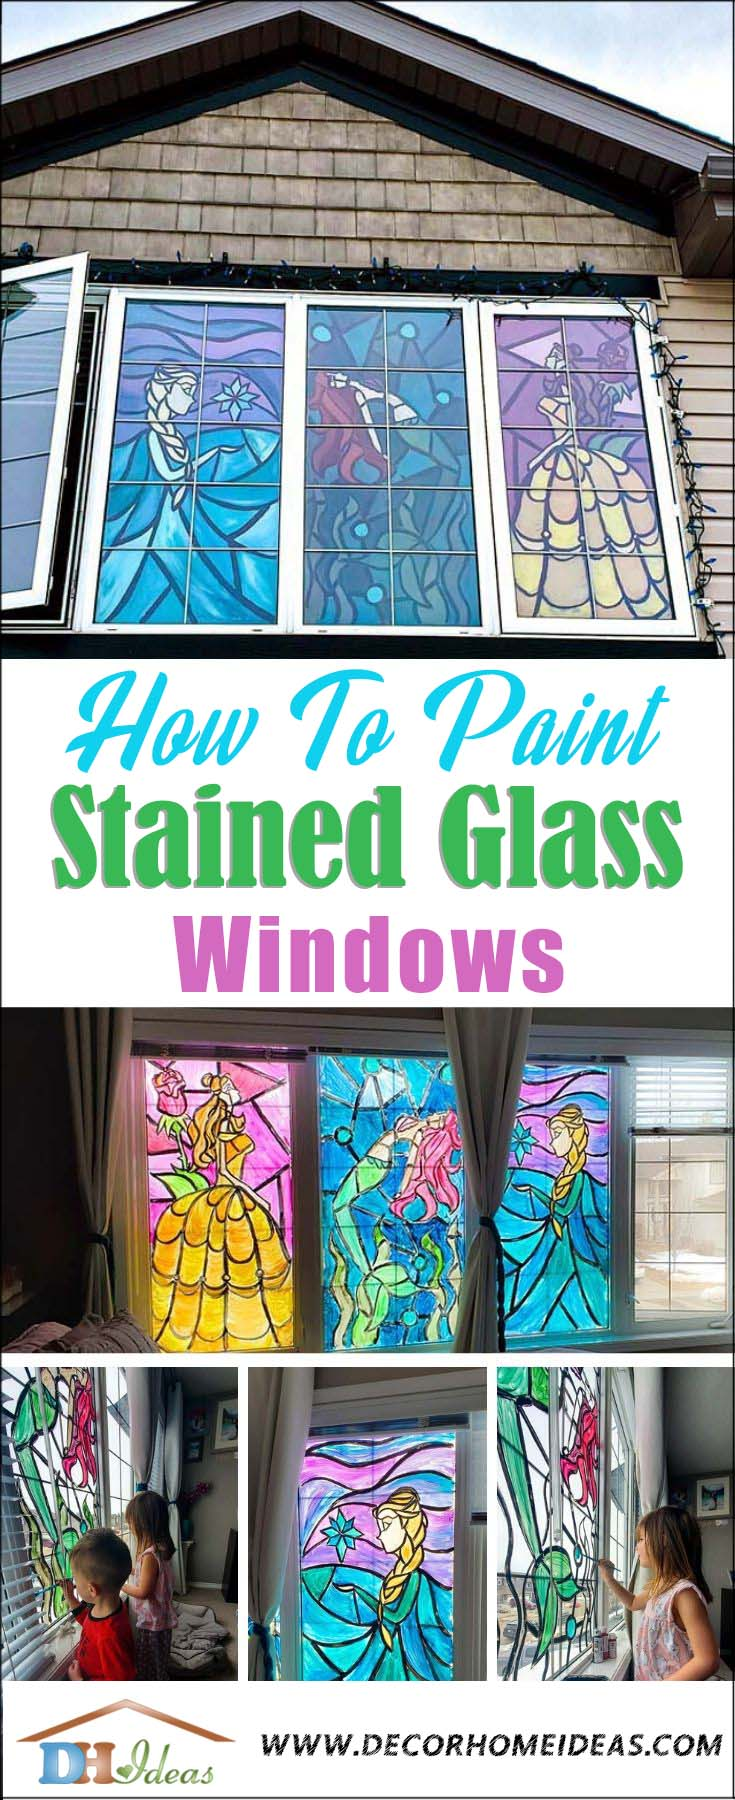 How To Paint Stained Glass Windows. Fun and easy project to do with your kids.  #diy #crafts #kids #paint #stain #windows #decorhomeideas